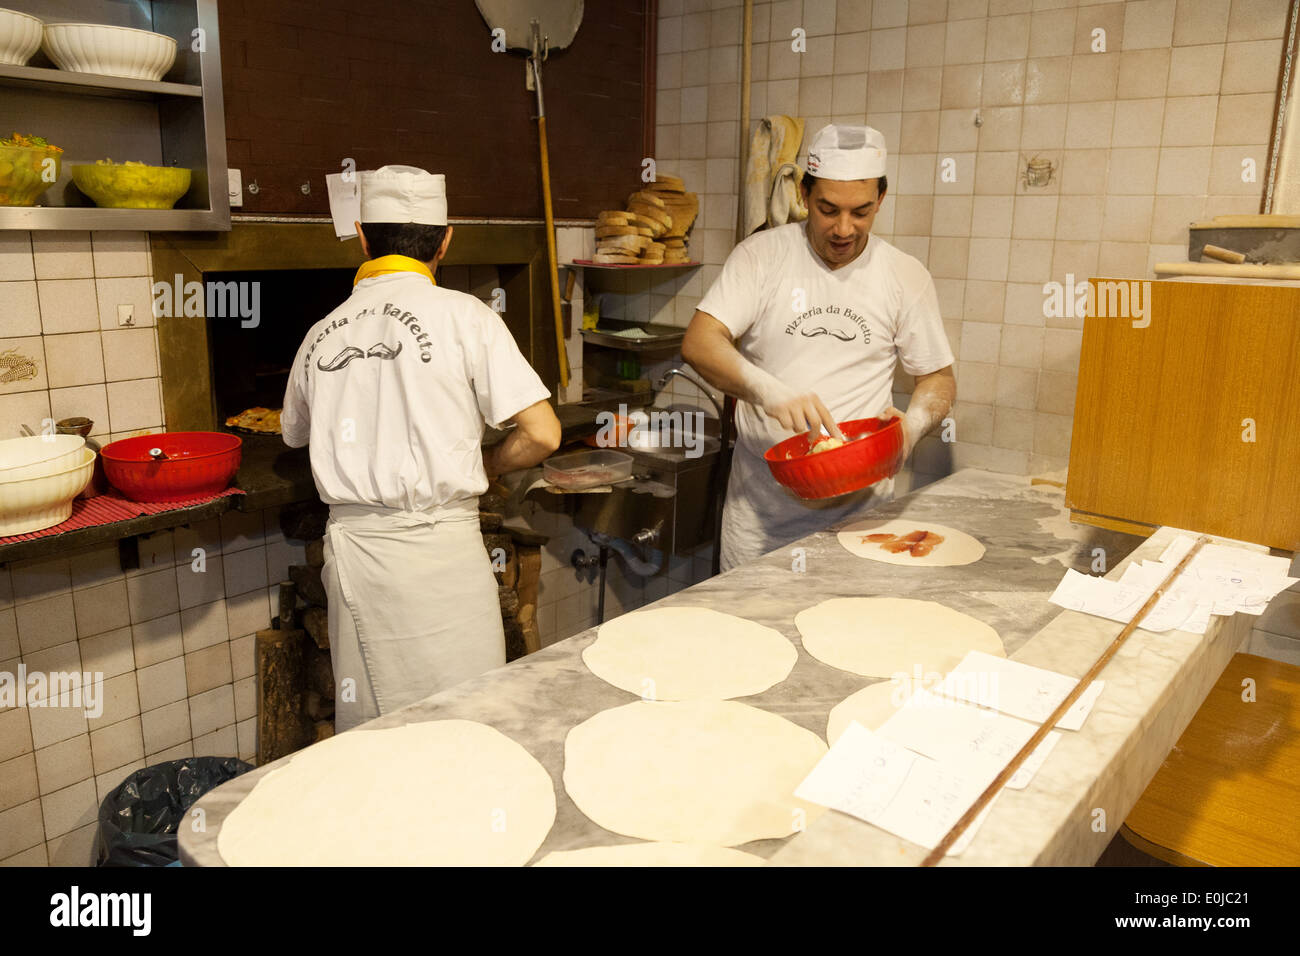 Cooks making pizza in the kitchen of Rome restaurant pizzeria making pizza pizzas cooks - Stock Image